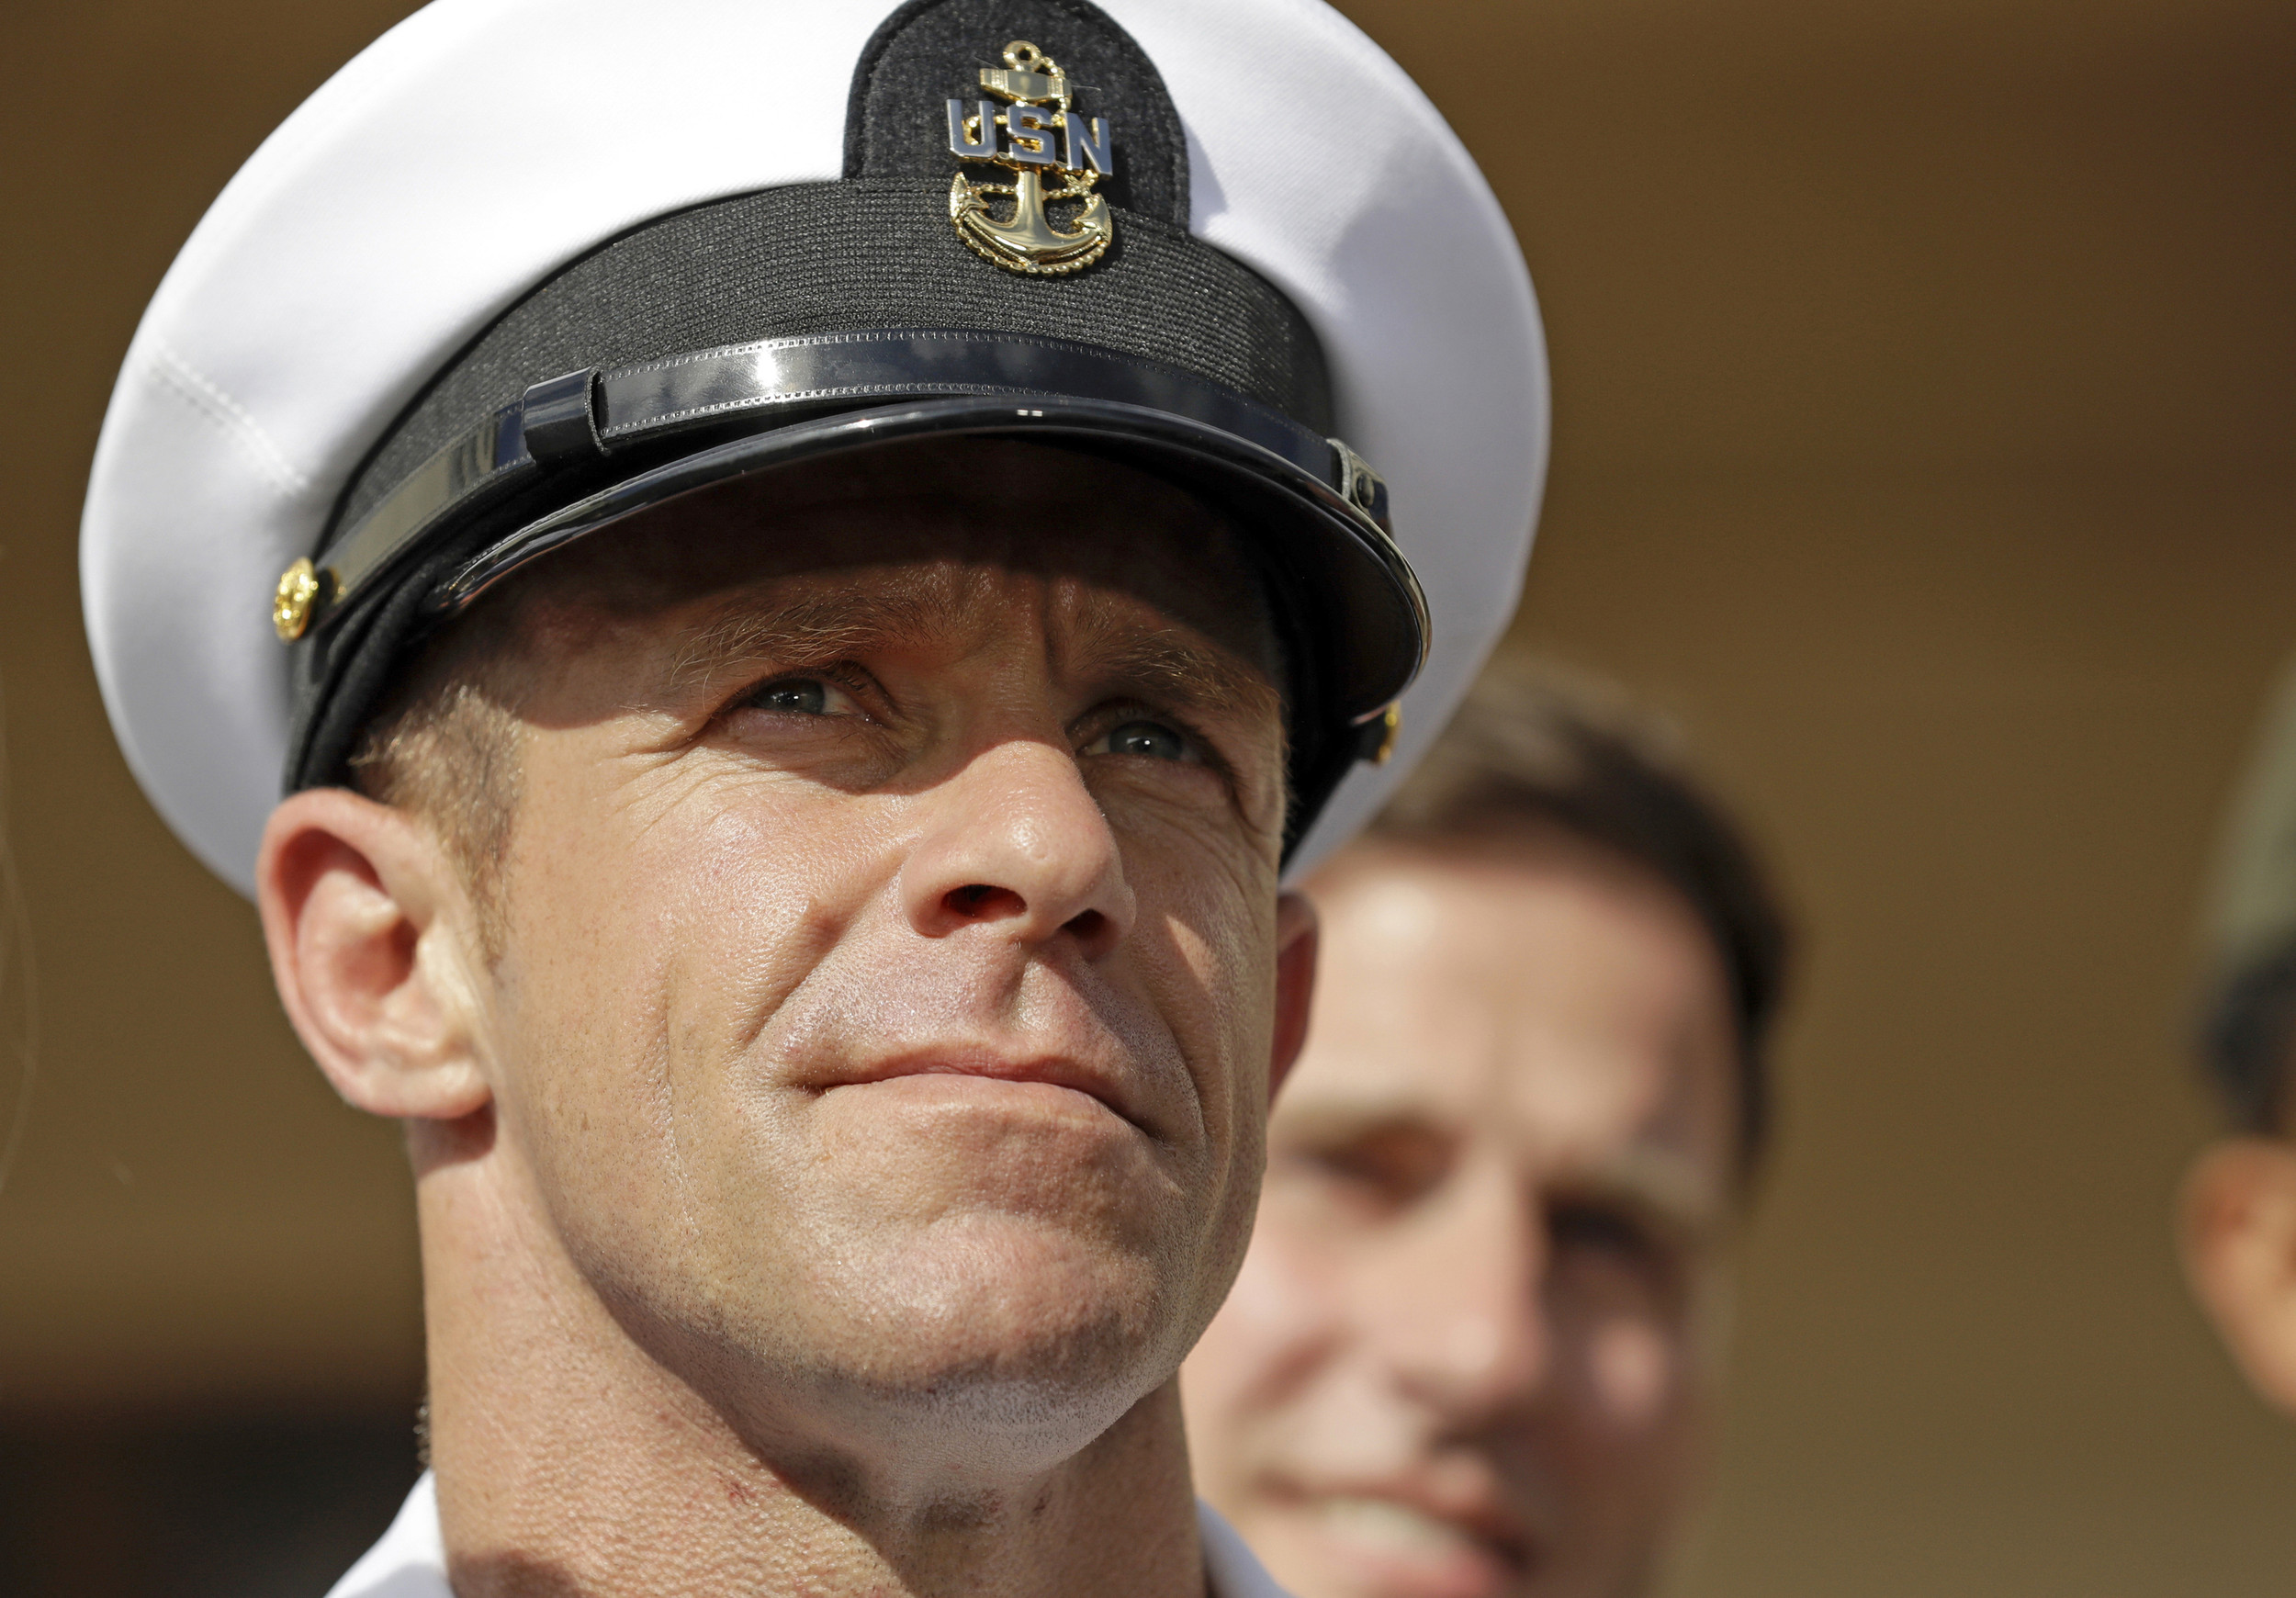 SEALs face review following death of Islamic State militant